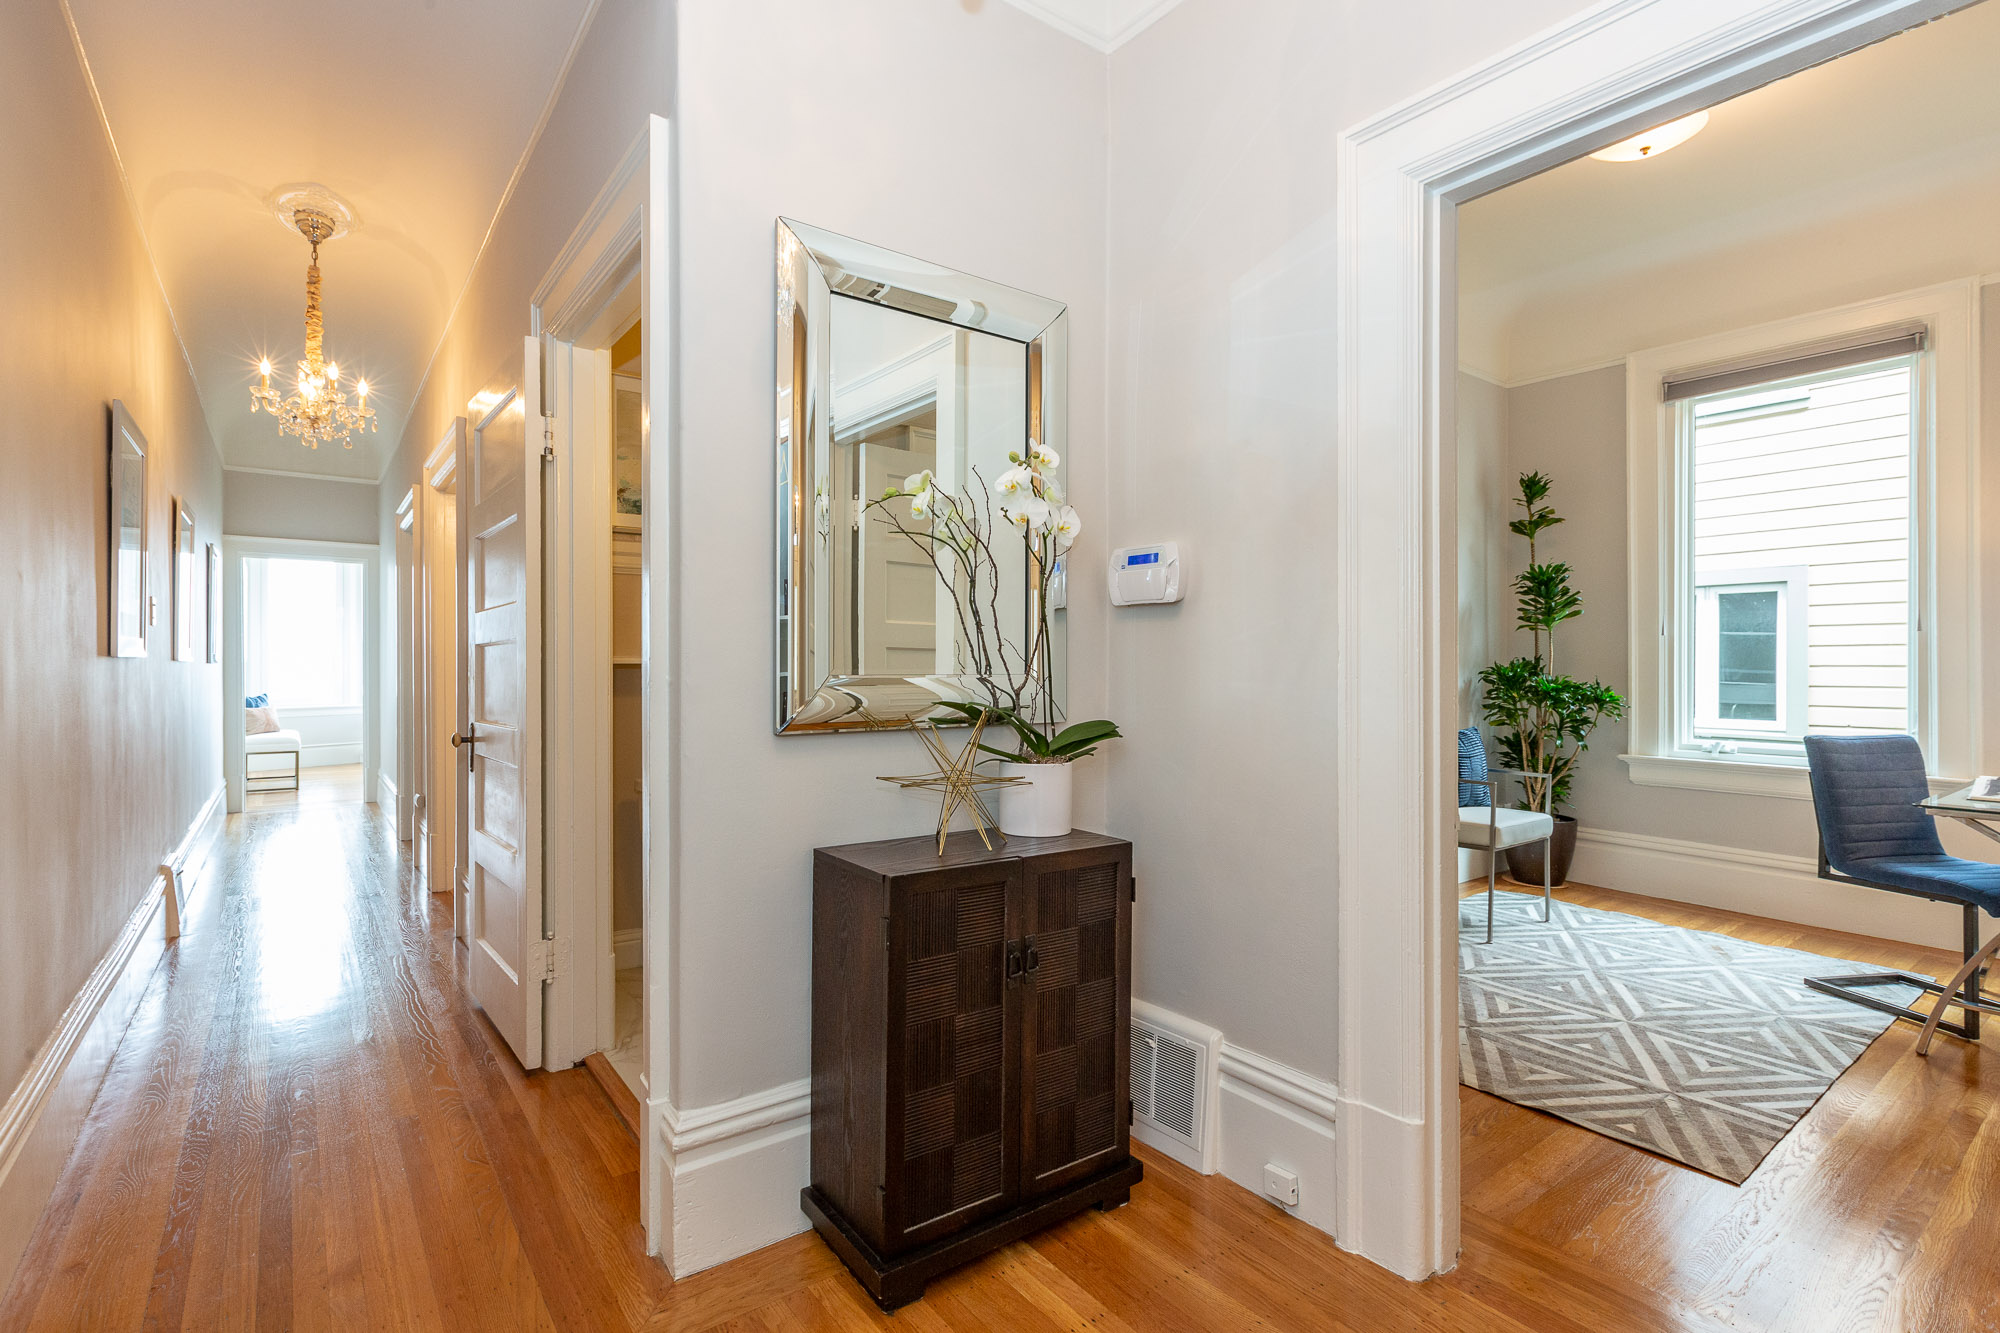 972 Union Street, San Francisco - Entry Hallway